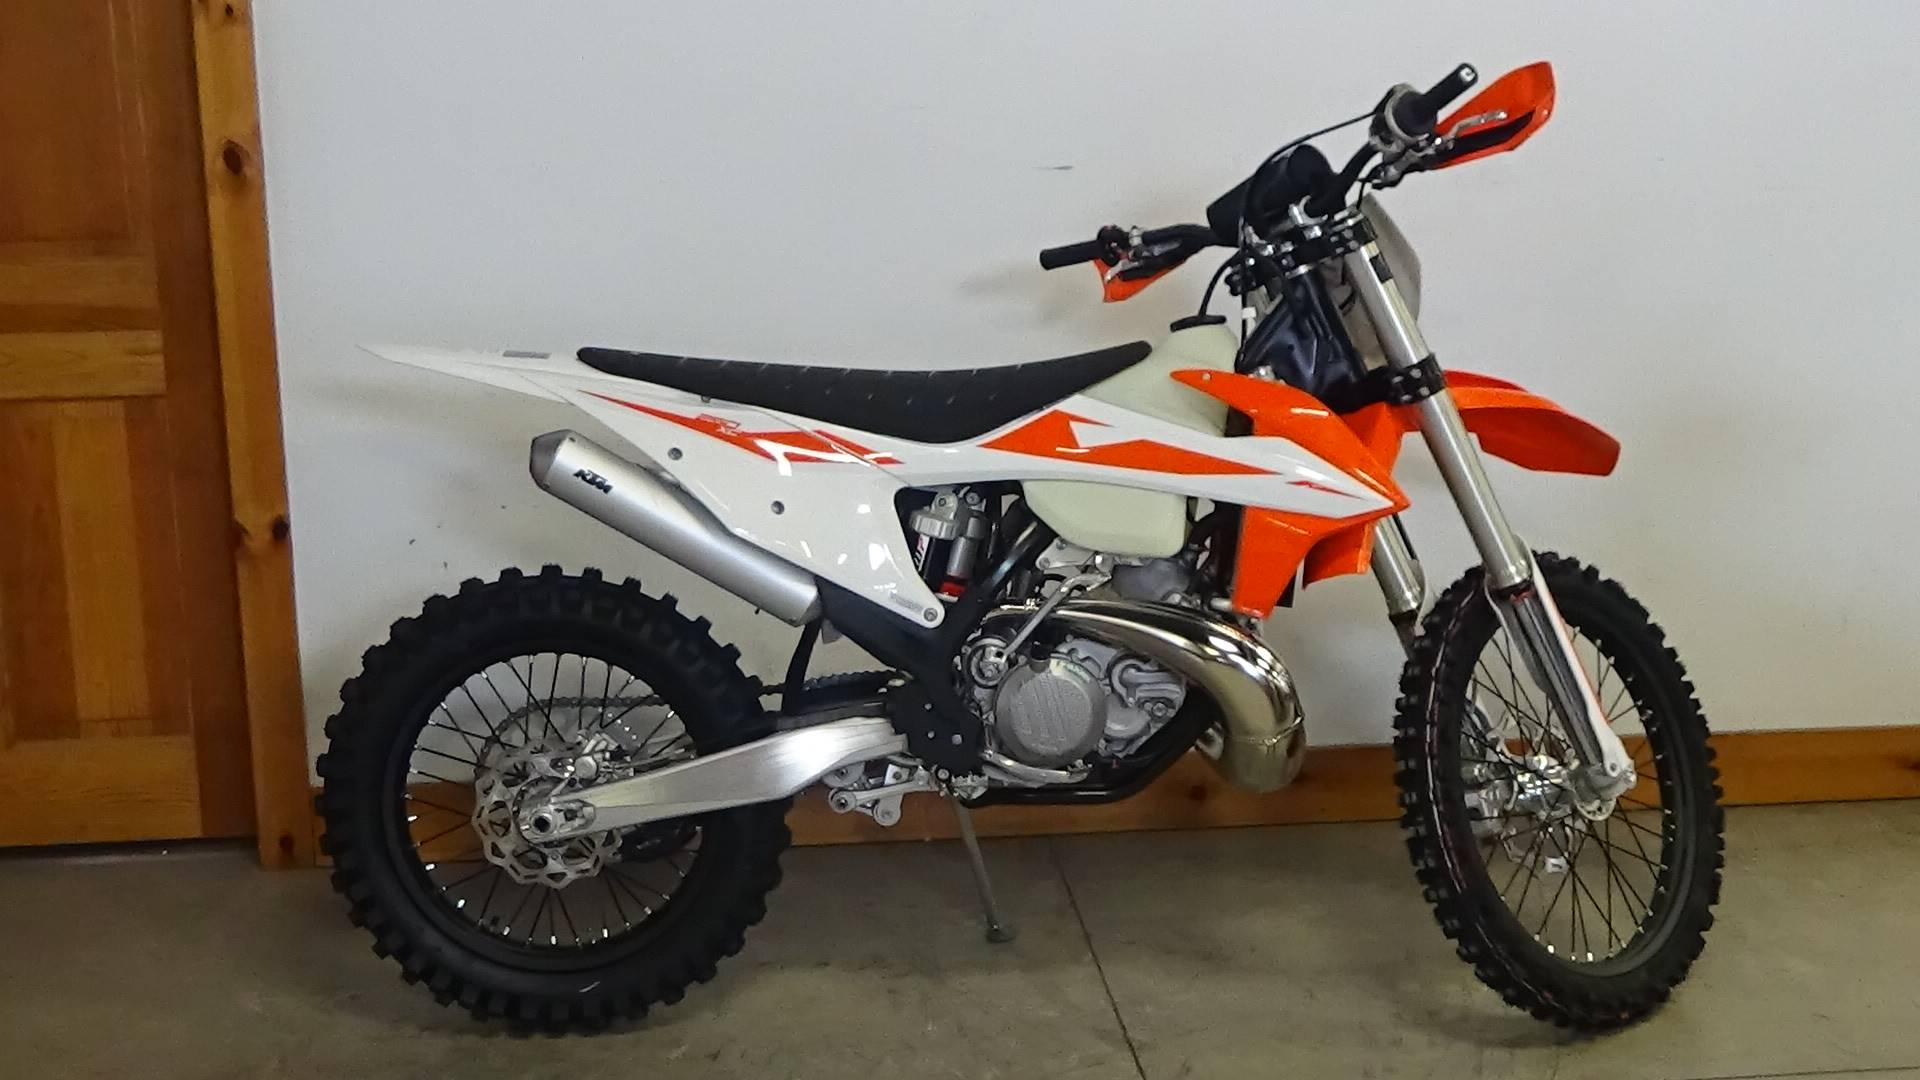 New 2019 KTM 250 XC Motorcycles in Adams, MA | Stock Number: 255168